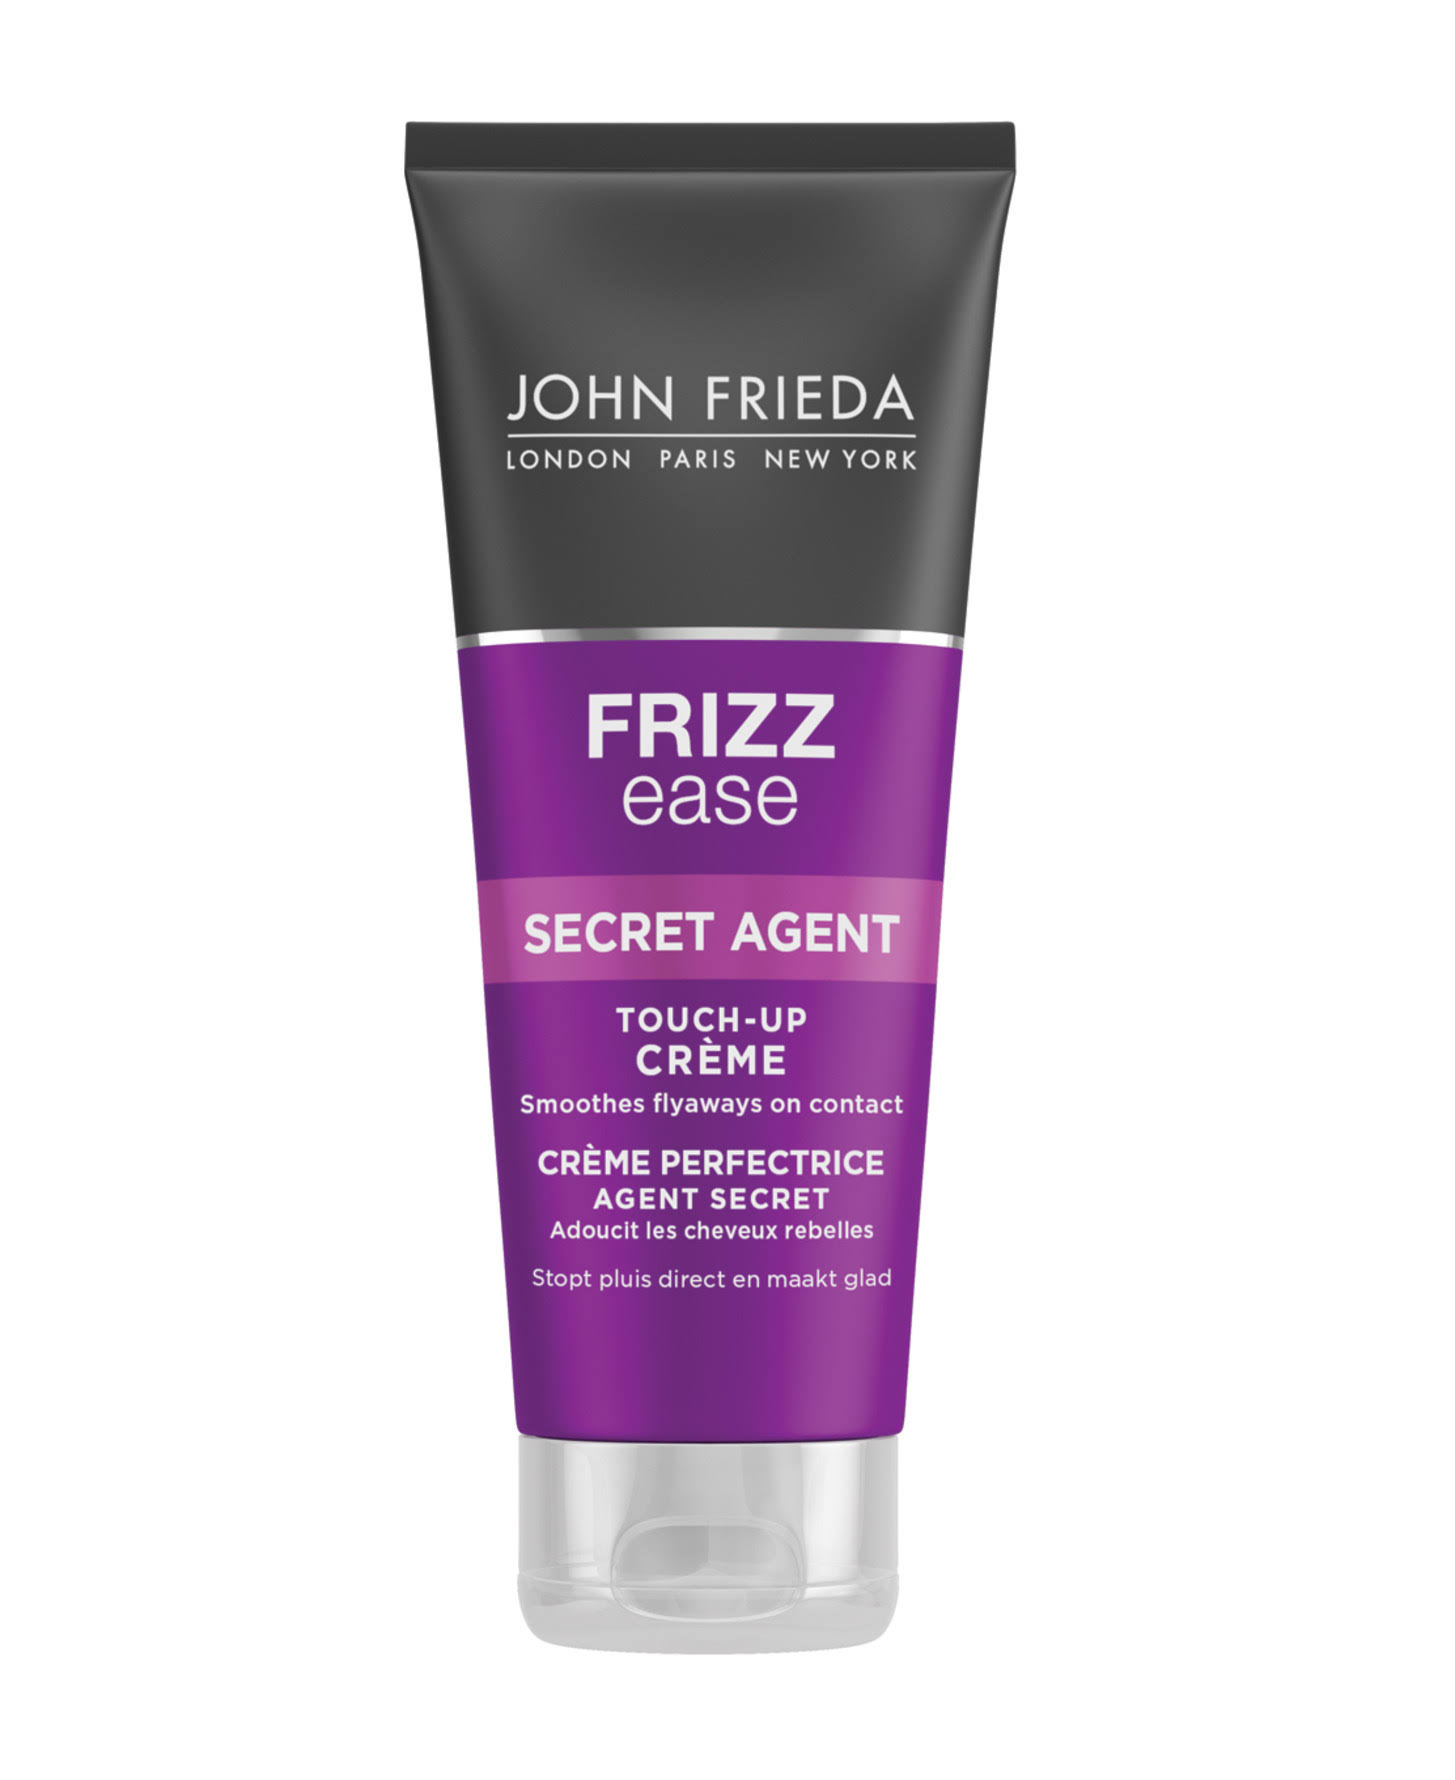 John Frieda Frizz Ease Touch-Up Creme - Secret Agent, 100ml